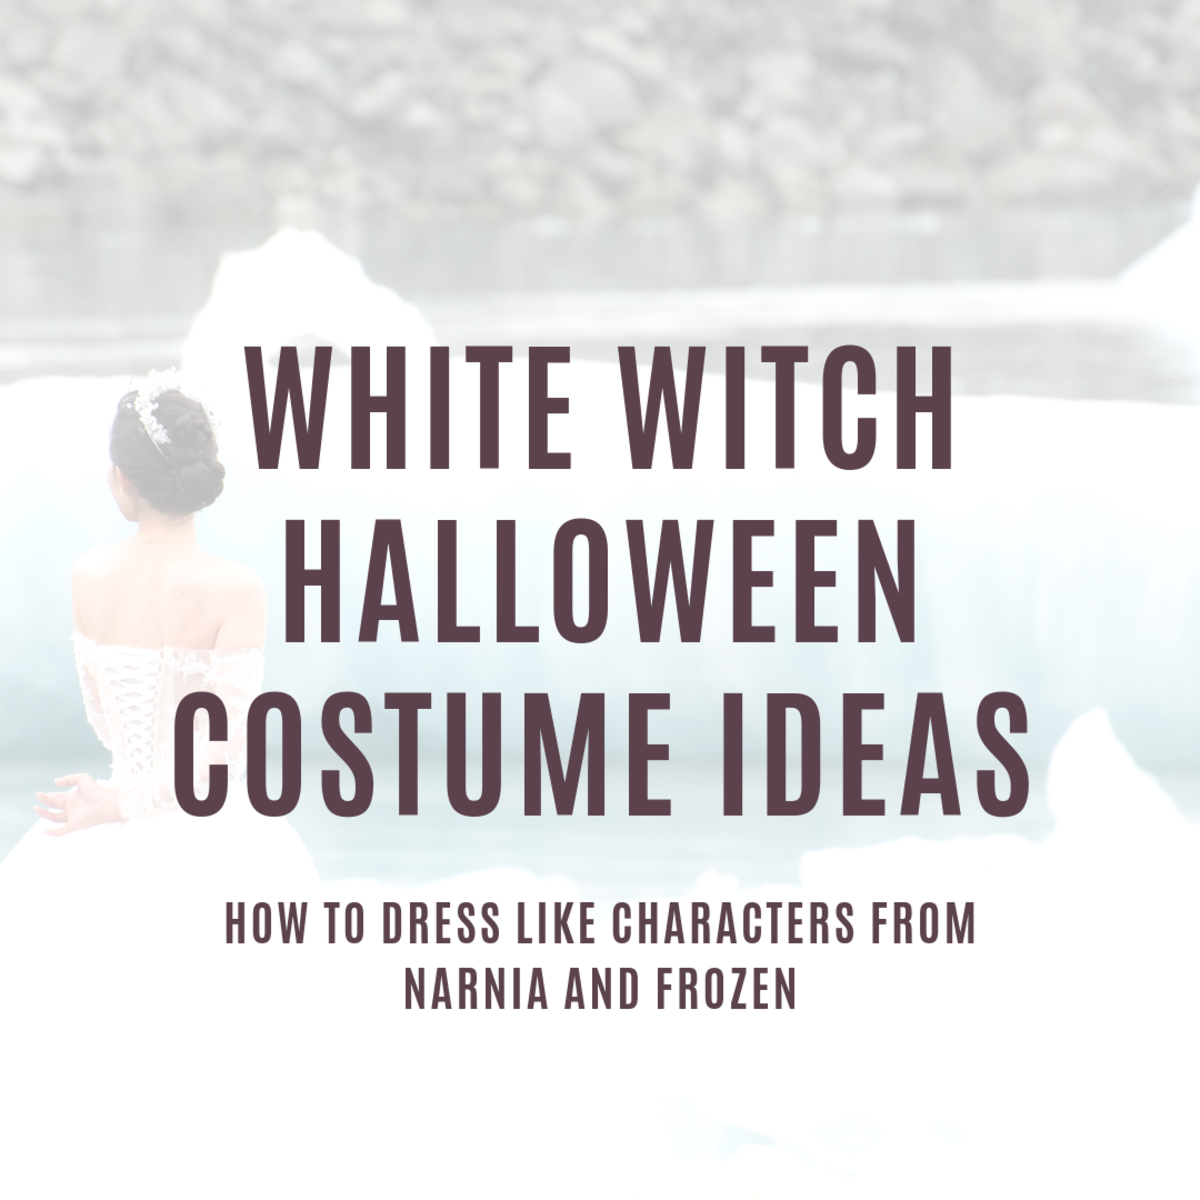 Here's a guide to making your own white witch or ice queen costume for Halloween or cosplay.